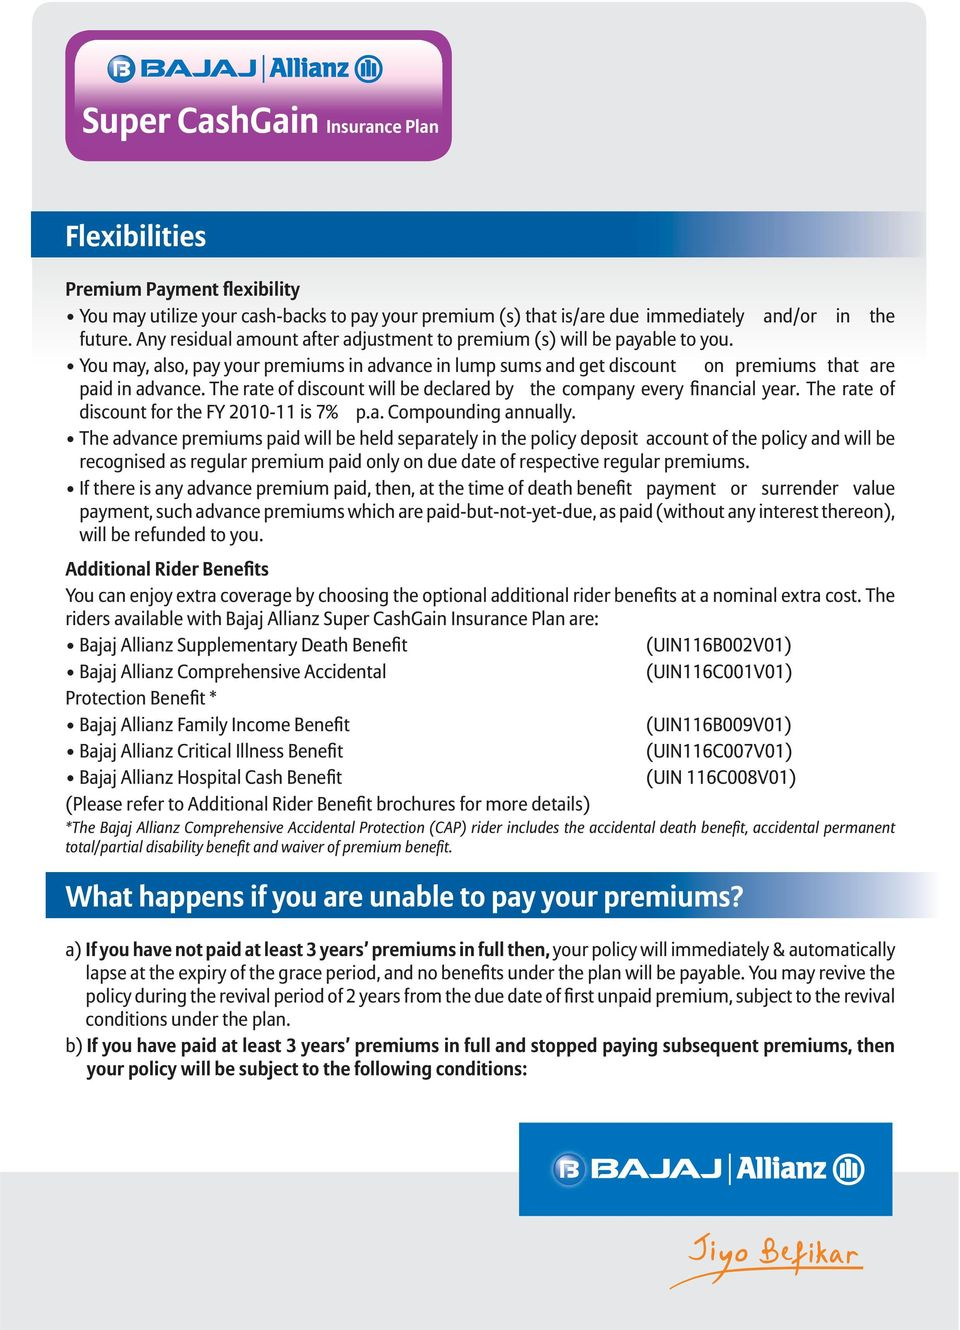 payment, such advance premiums which are paid-but-not-yet-due, as paid (without any interest thereon), will be refunded to you.